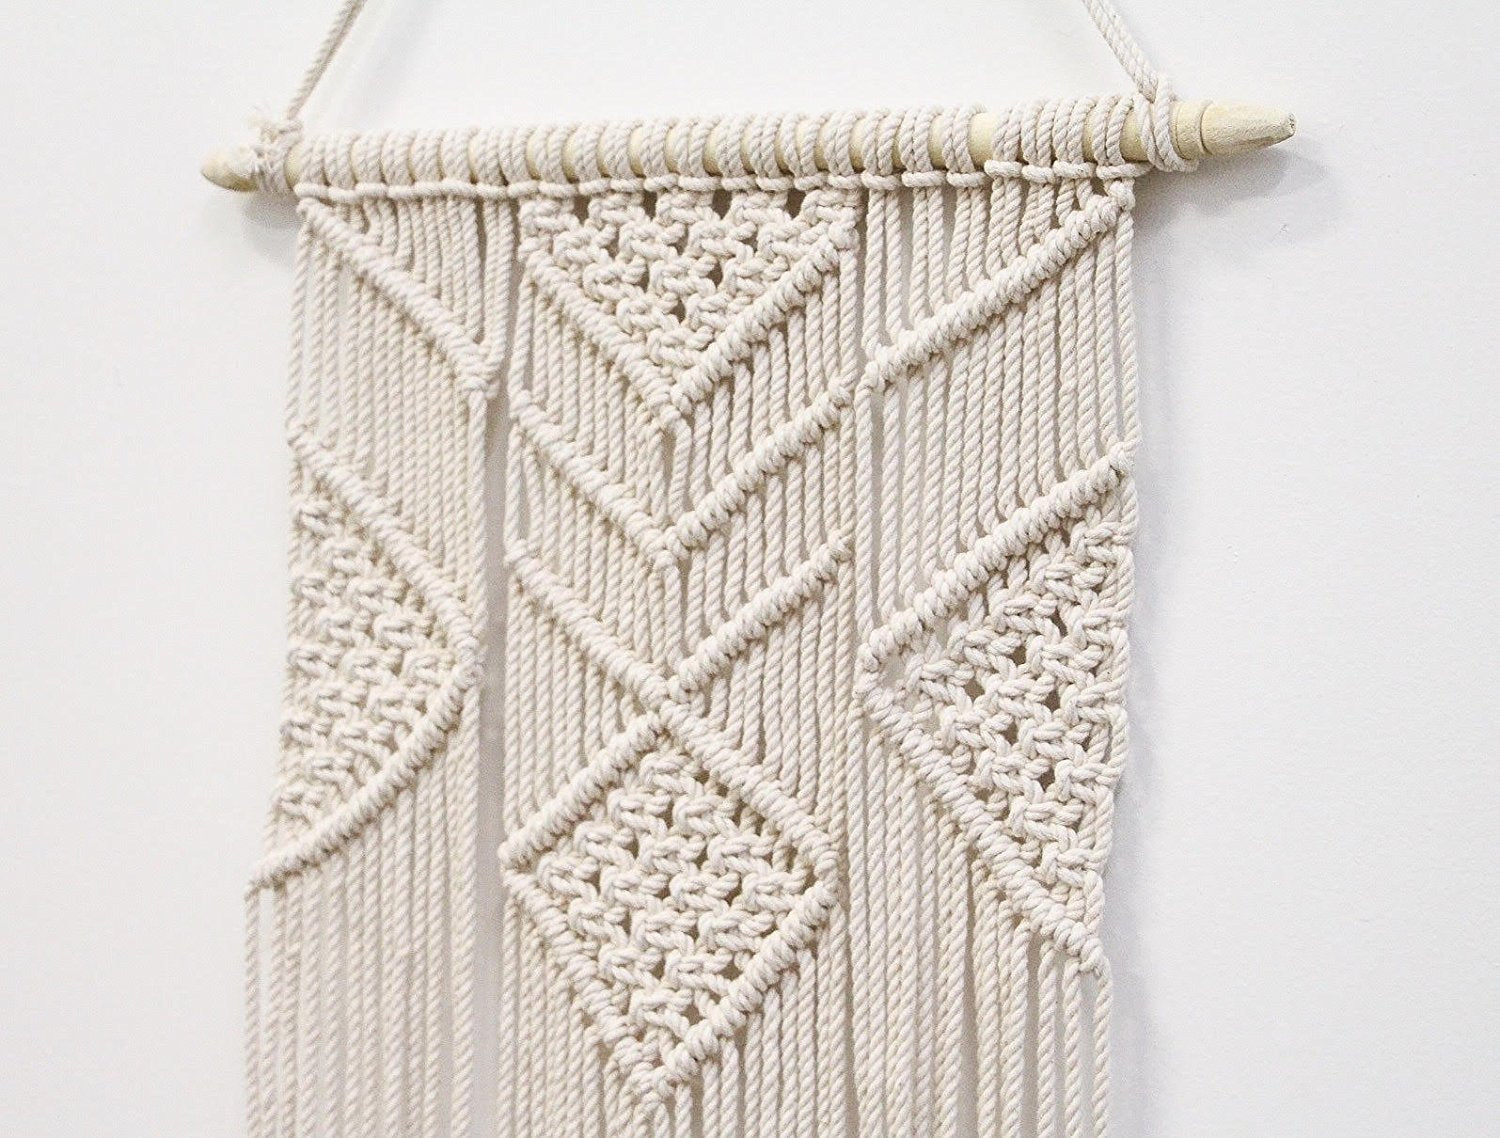 Handcraft Tapestry Woven White Macrame Wall Hanger - BohoEntice